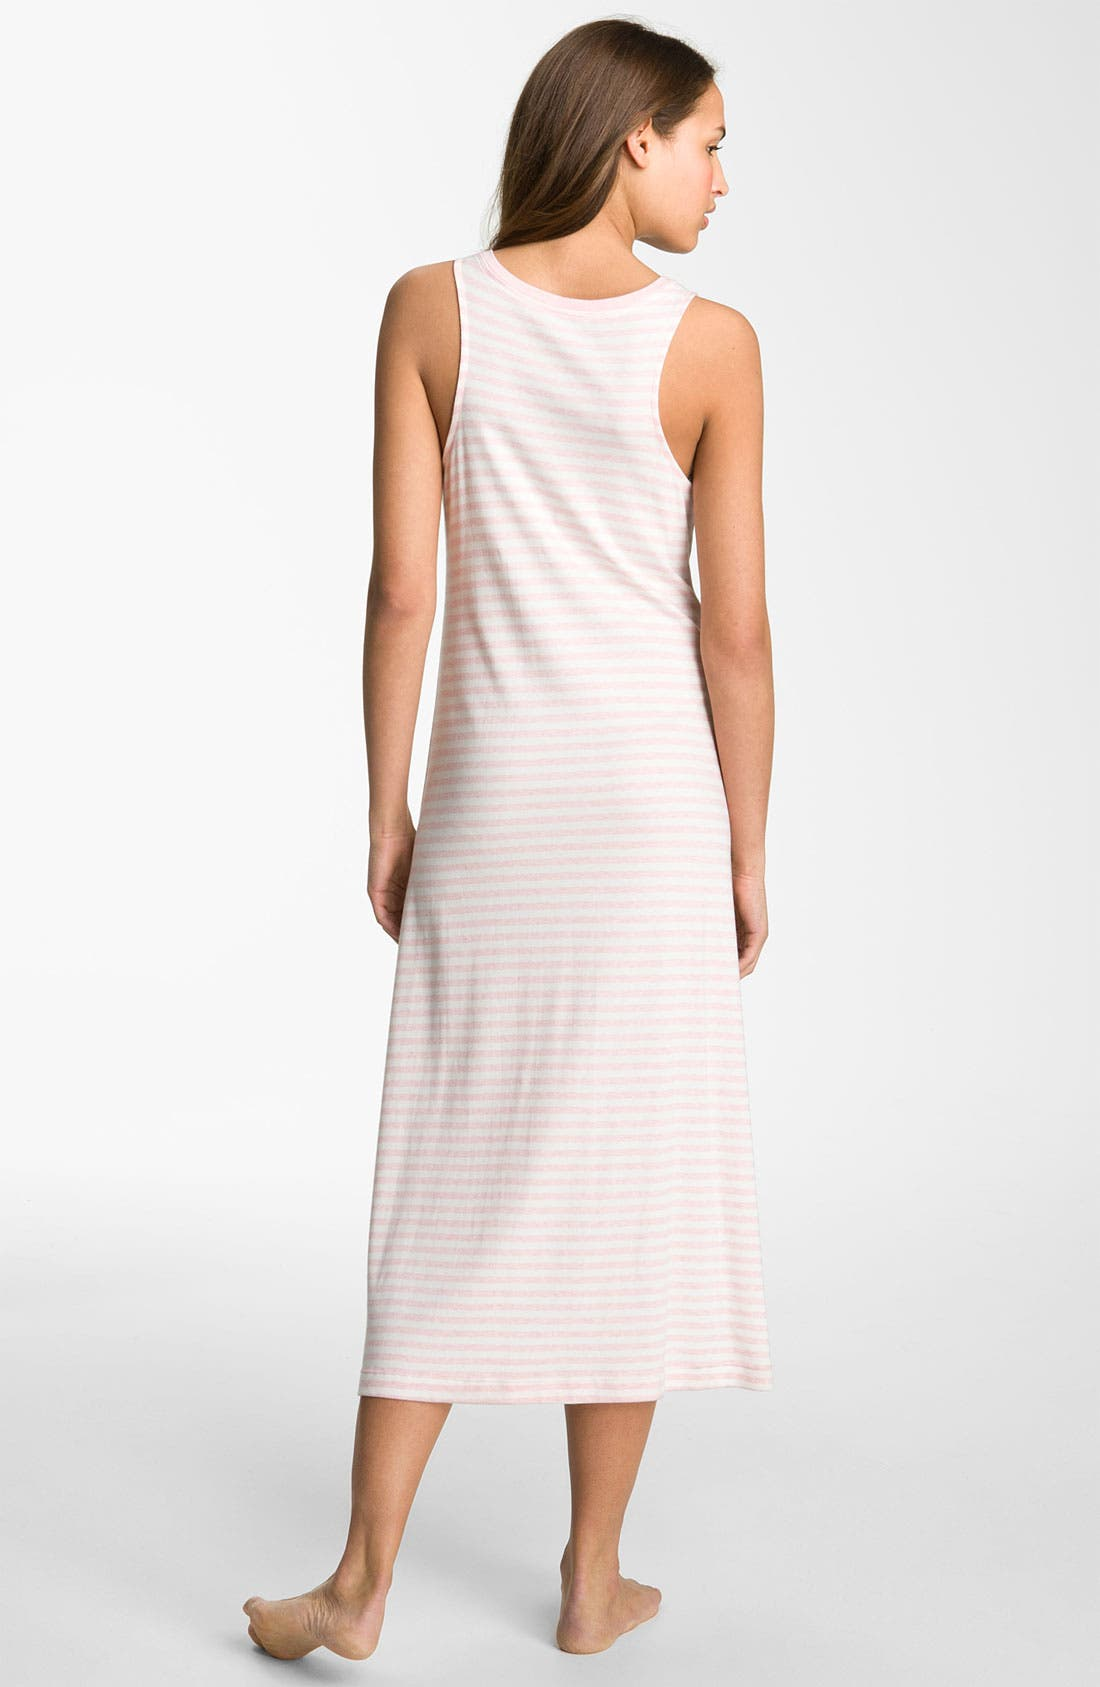 Alternate Image 2  - Carole Hochman Designs 'Gardenside' Nightgown